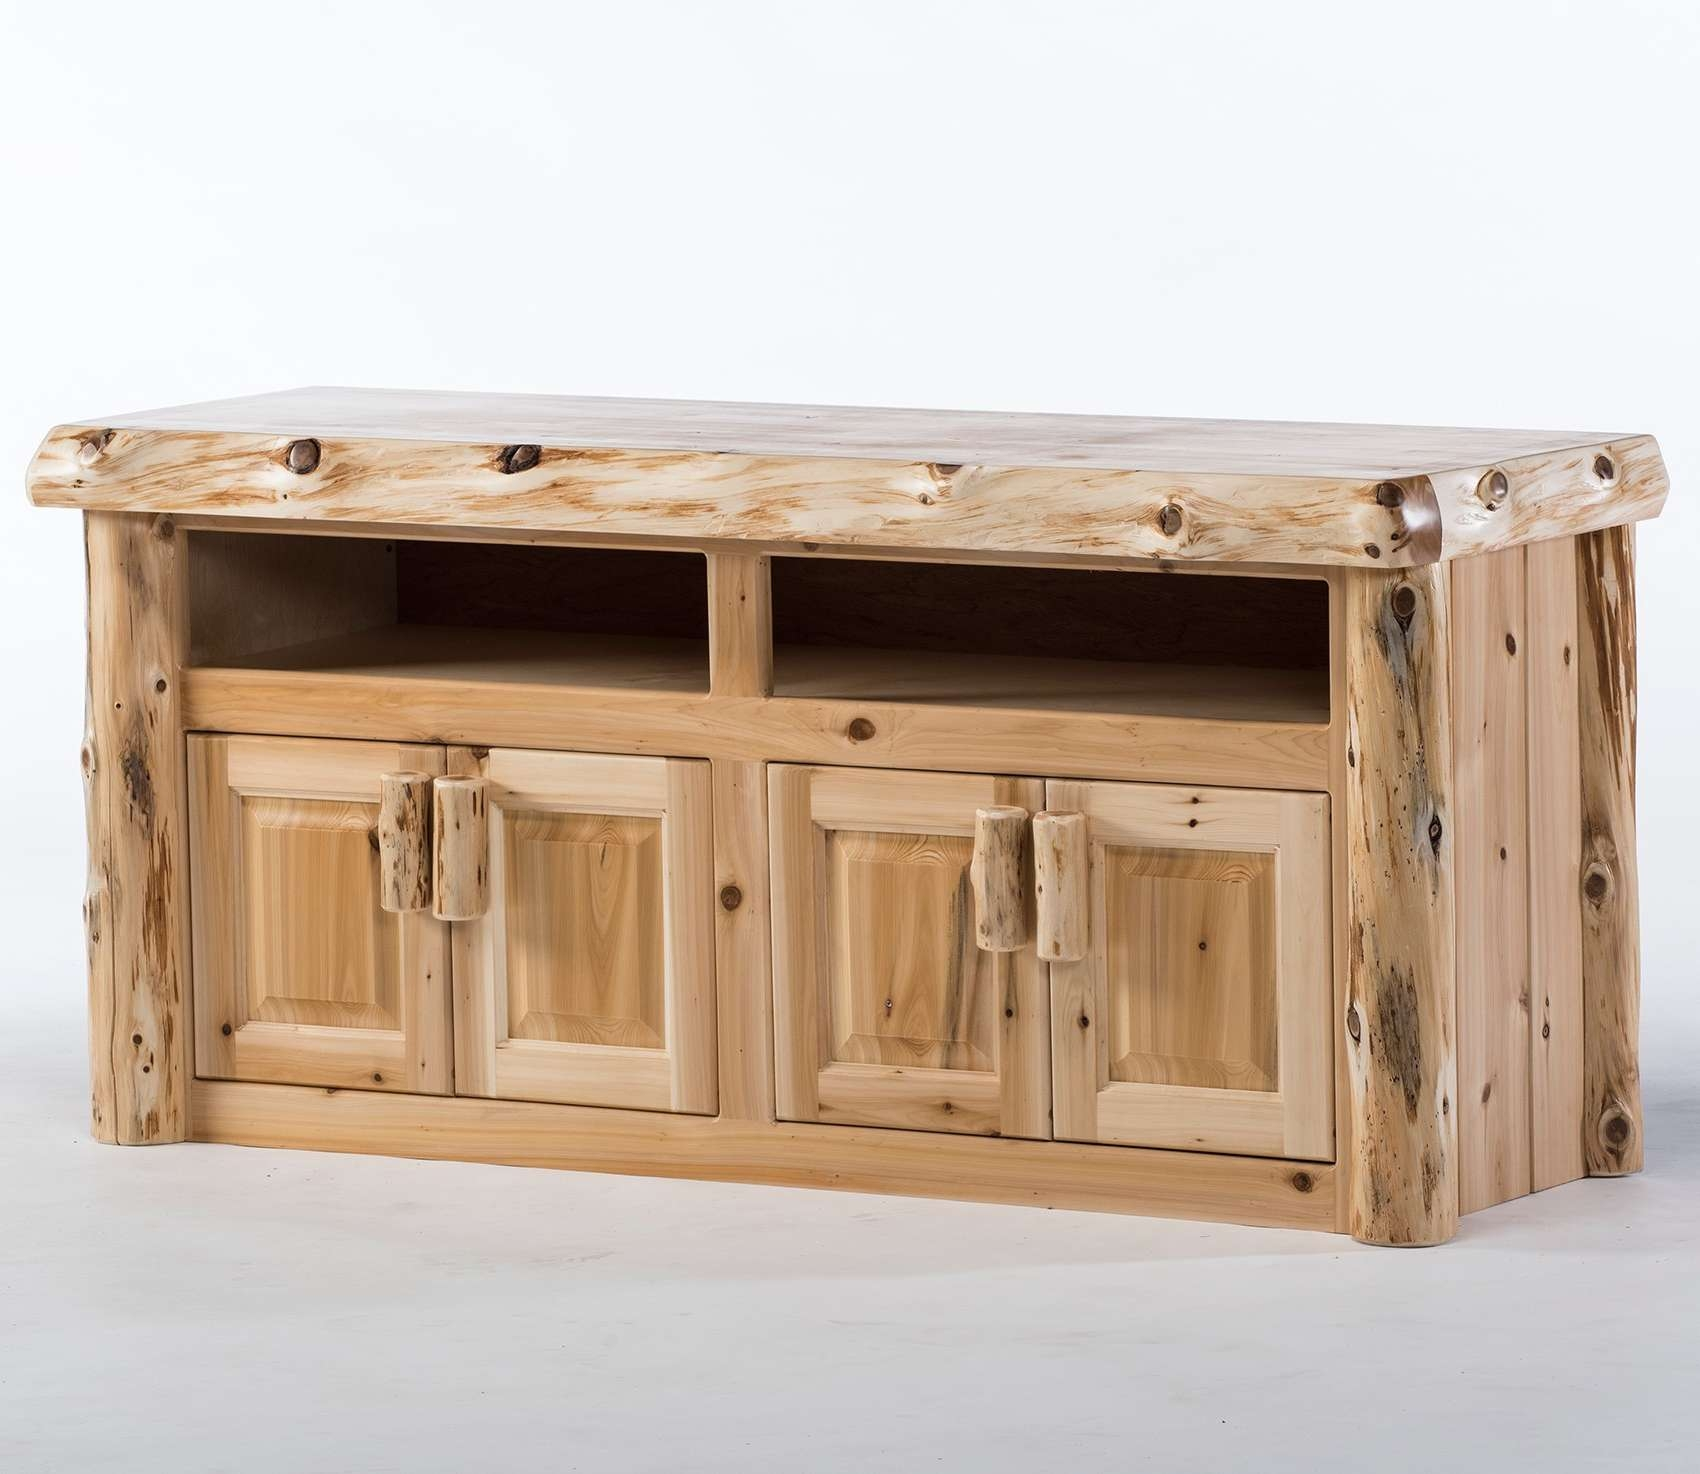 Reclaimed Wood Tv Stands & Rustic Tv Stands: Log Tv Stand & Rustic In Rustic Wood Tv Cabinets (View 7 of 20)